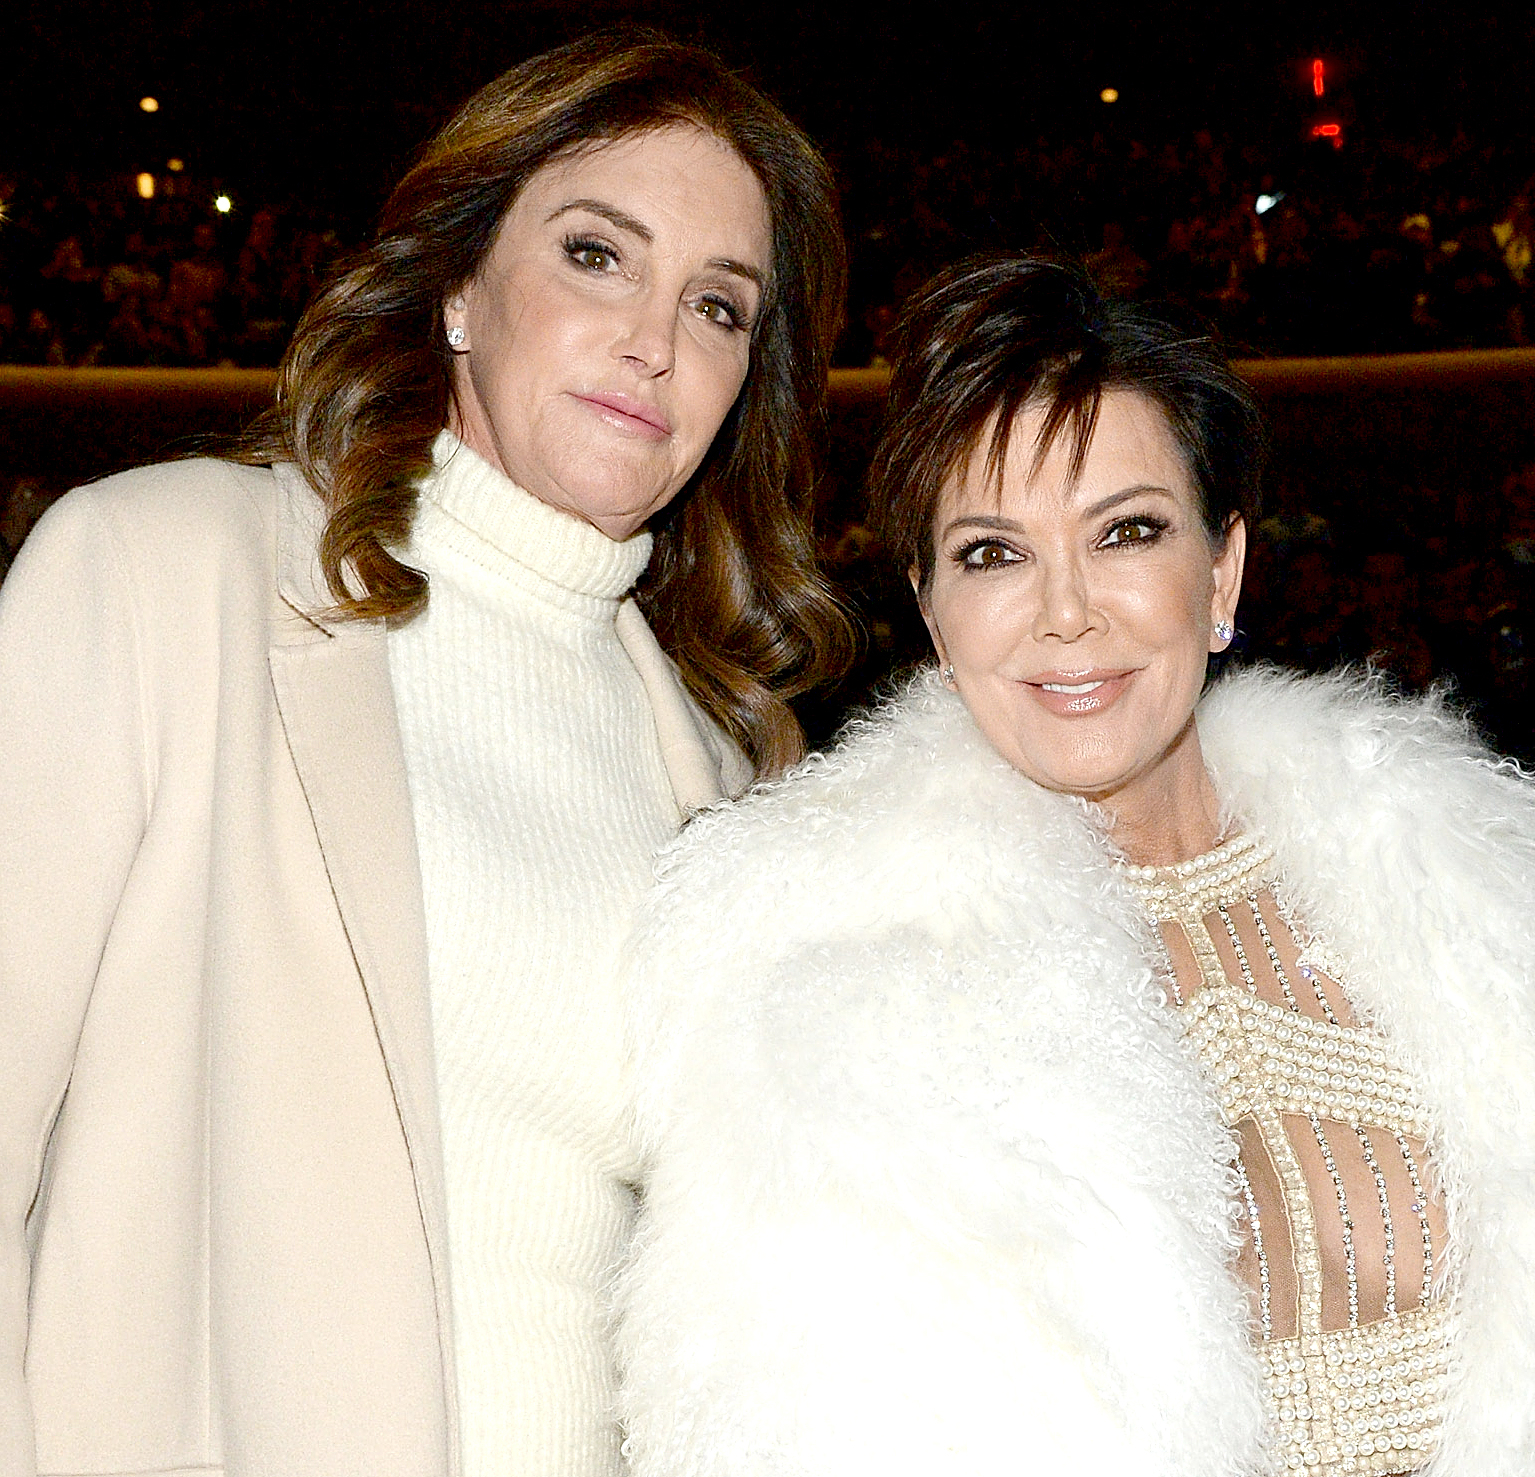 Caitlyn Jenner and Kris Jenner attend Kanye West Yeezy Season 3 at Madison Square Garden on February 11, 2016 in New York City.